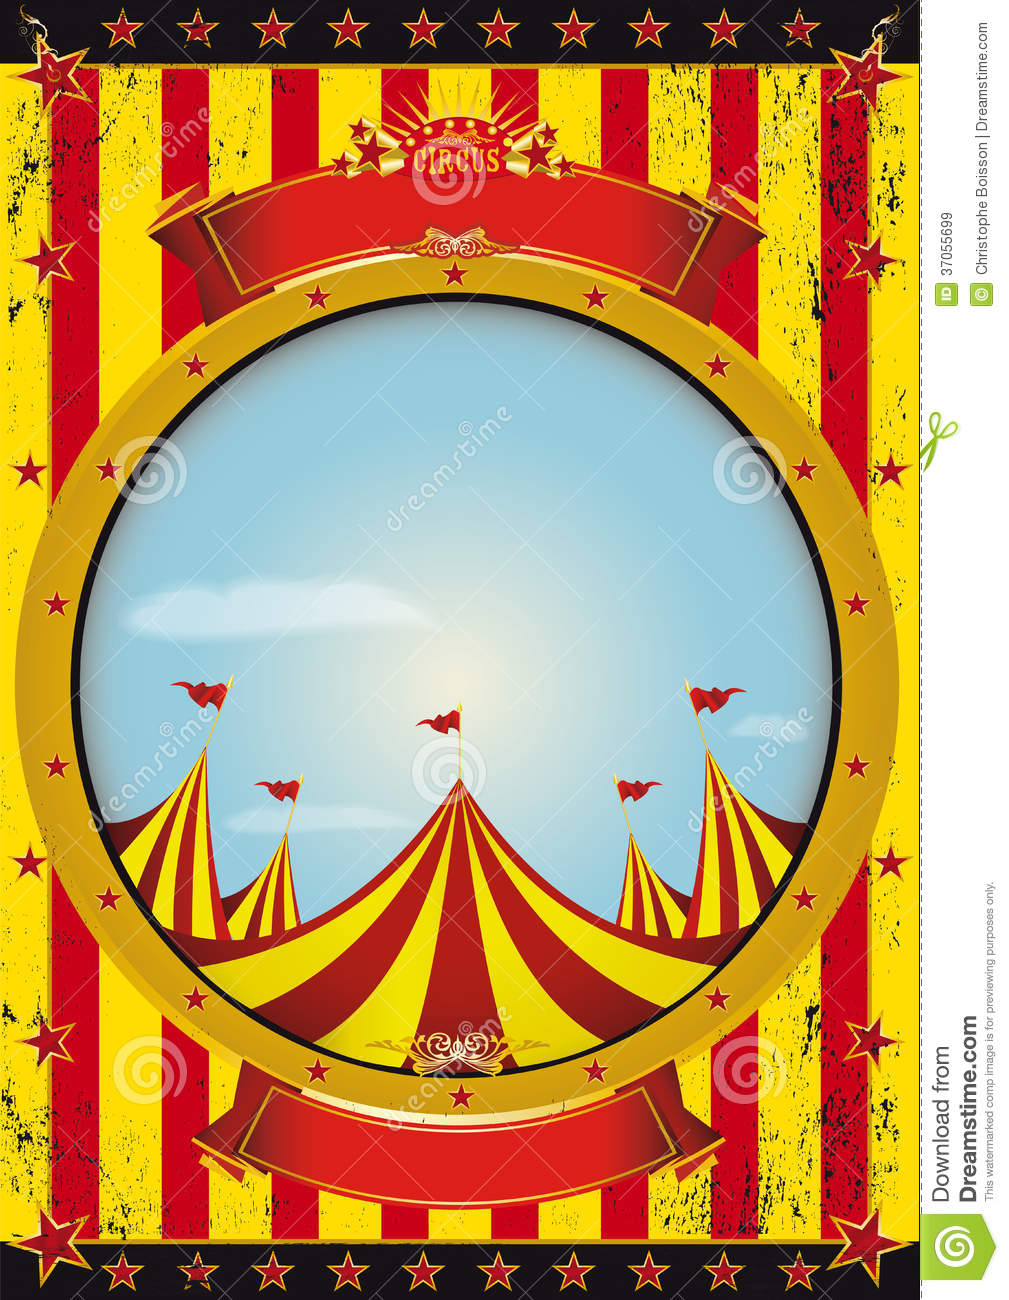 Entertainment Circus Poster Royalty Free Stock Images